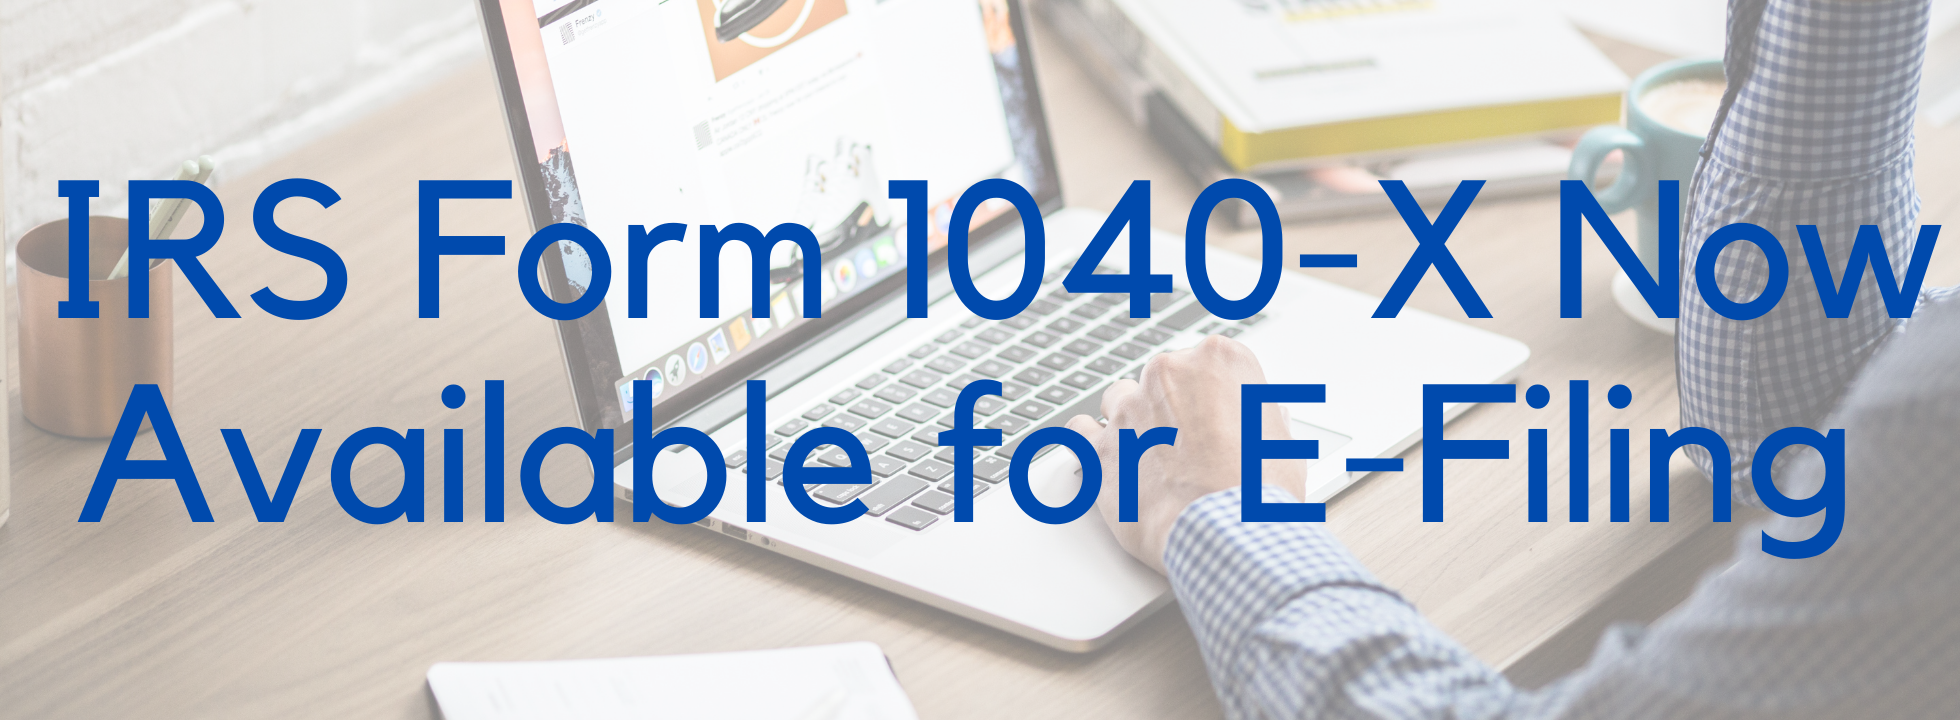 IRS Form 1040-X Now Available for E-Filing